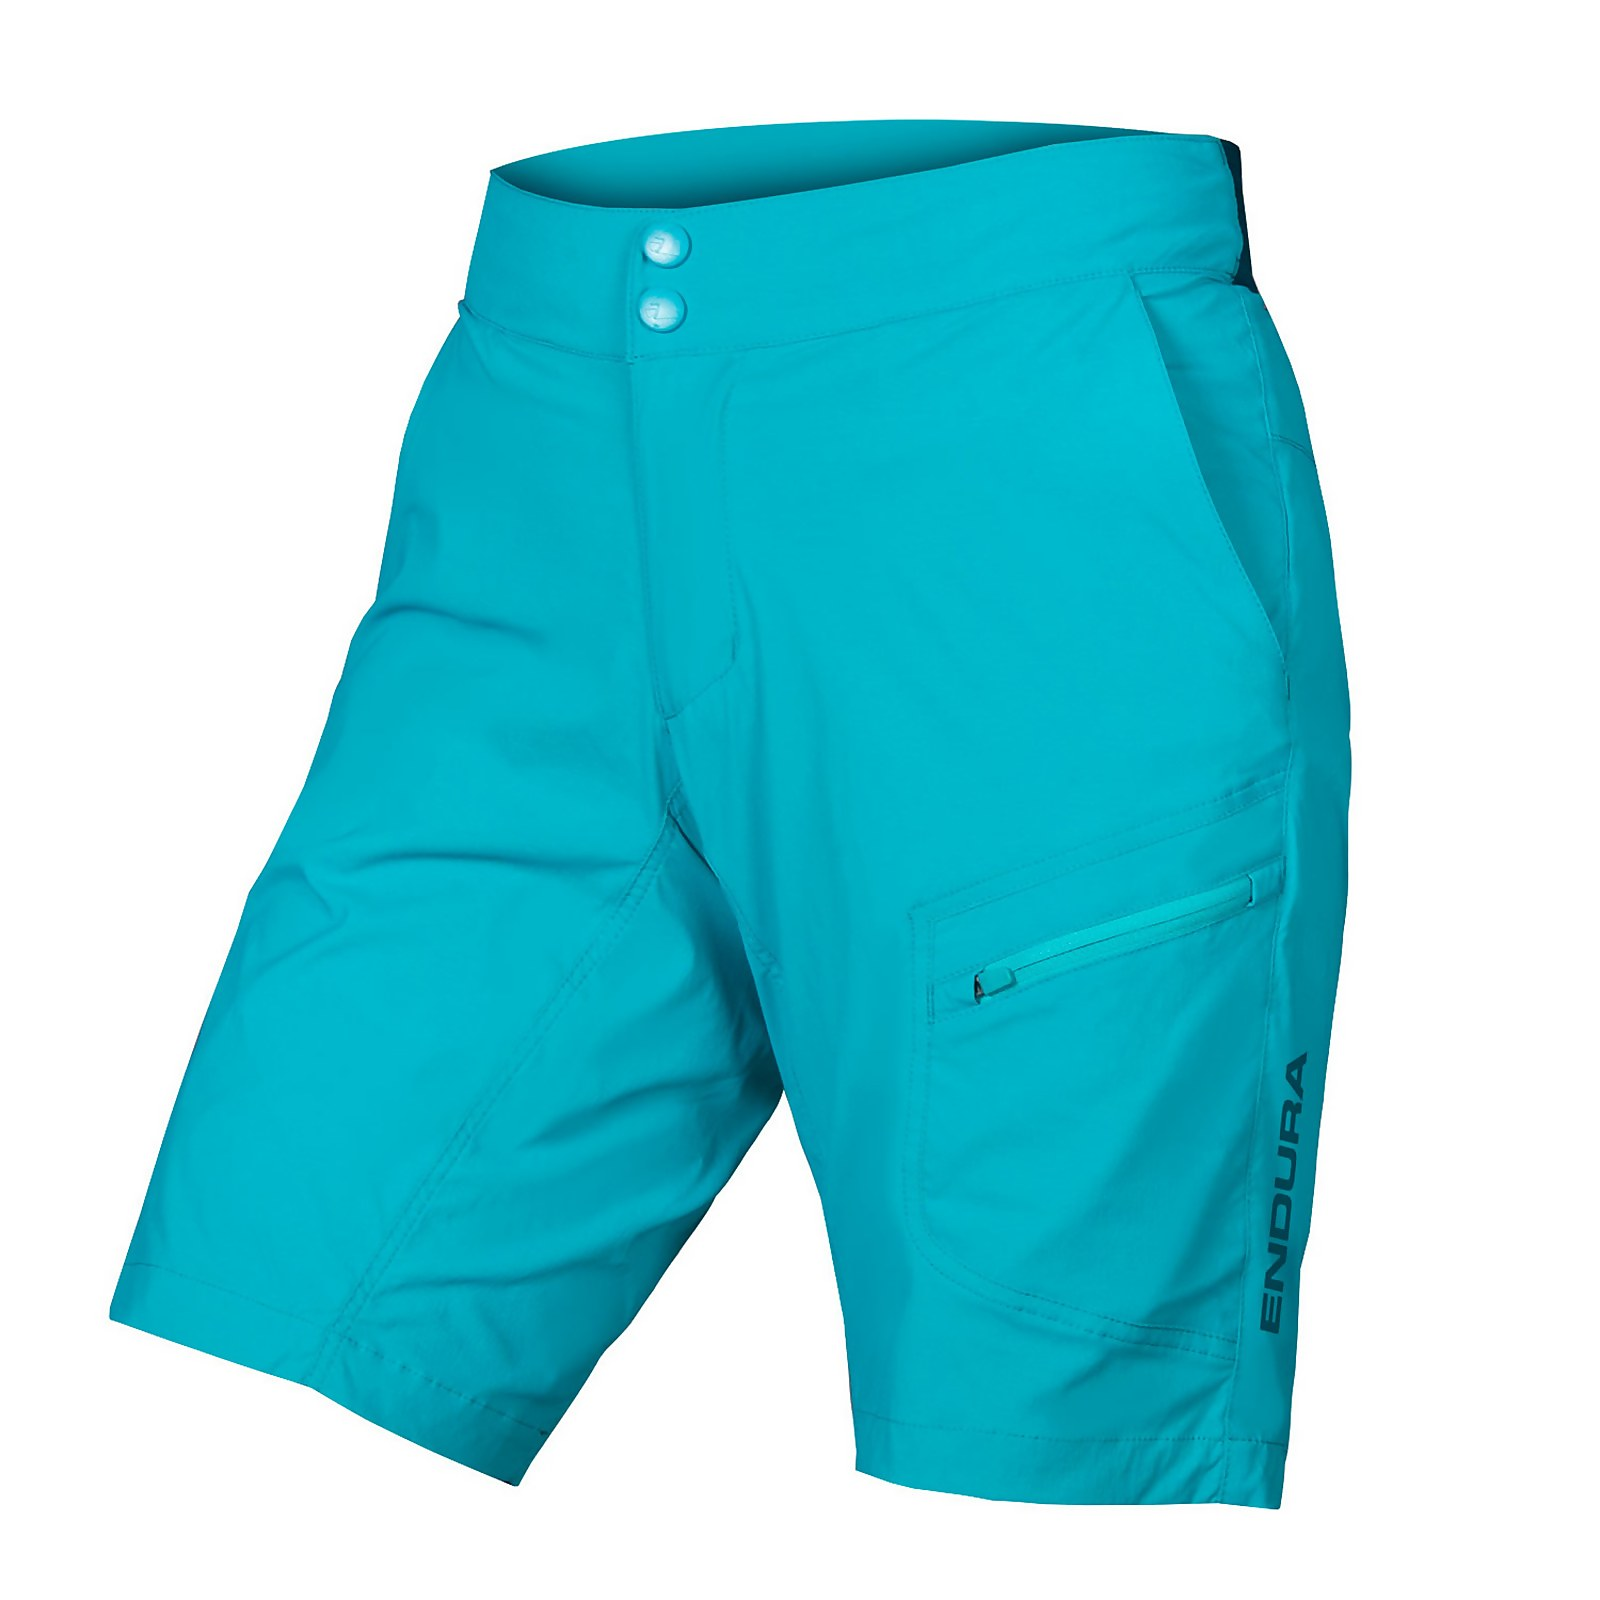 Womens Hummvee Lite Short With Liner - Pacific Blue - L